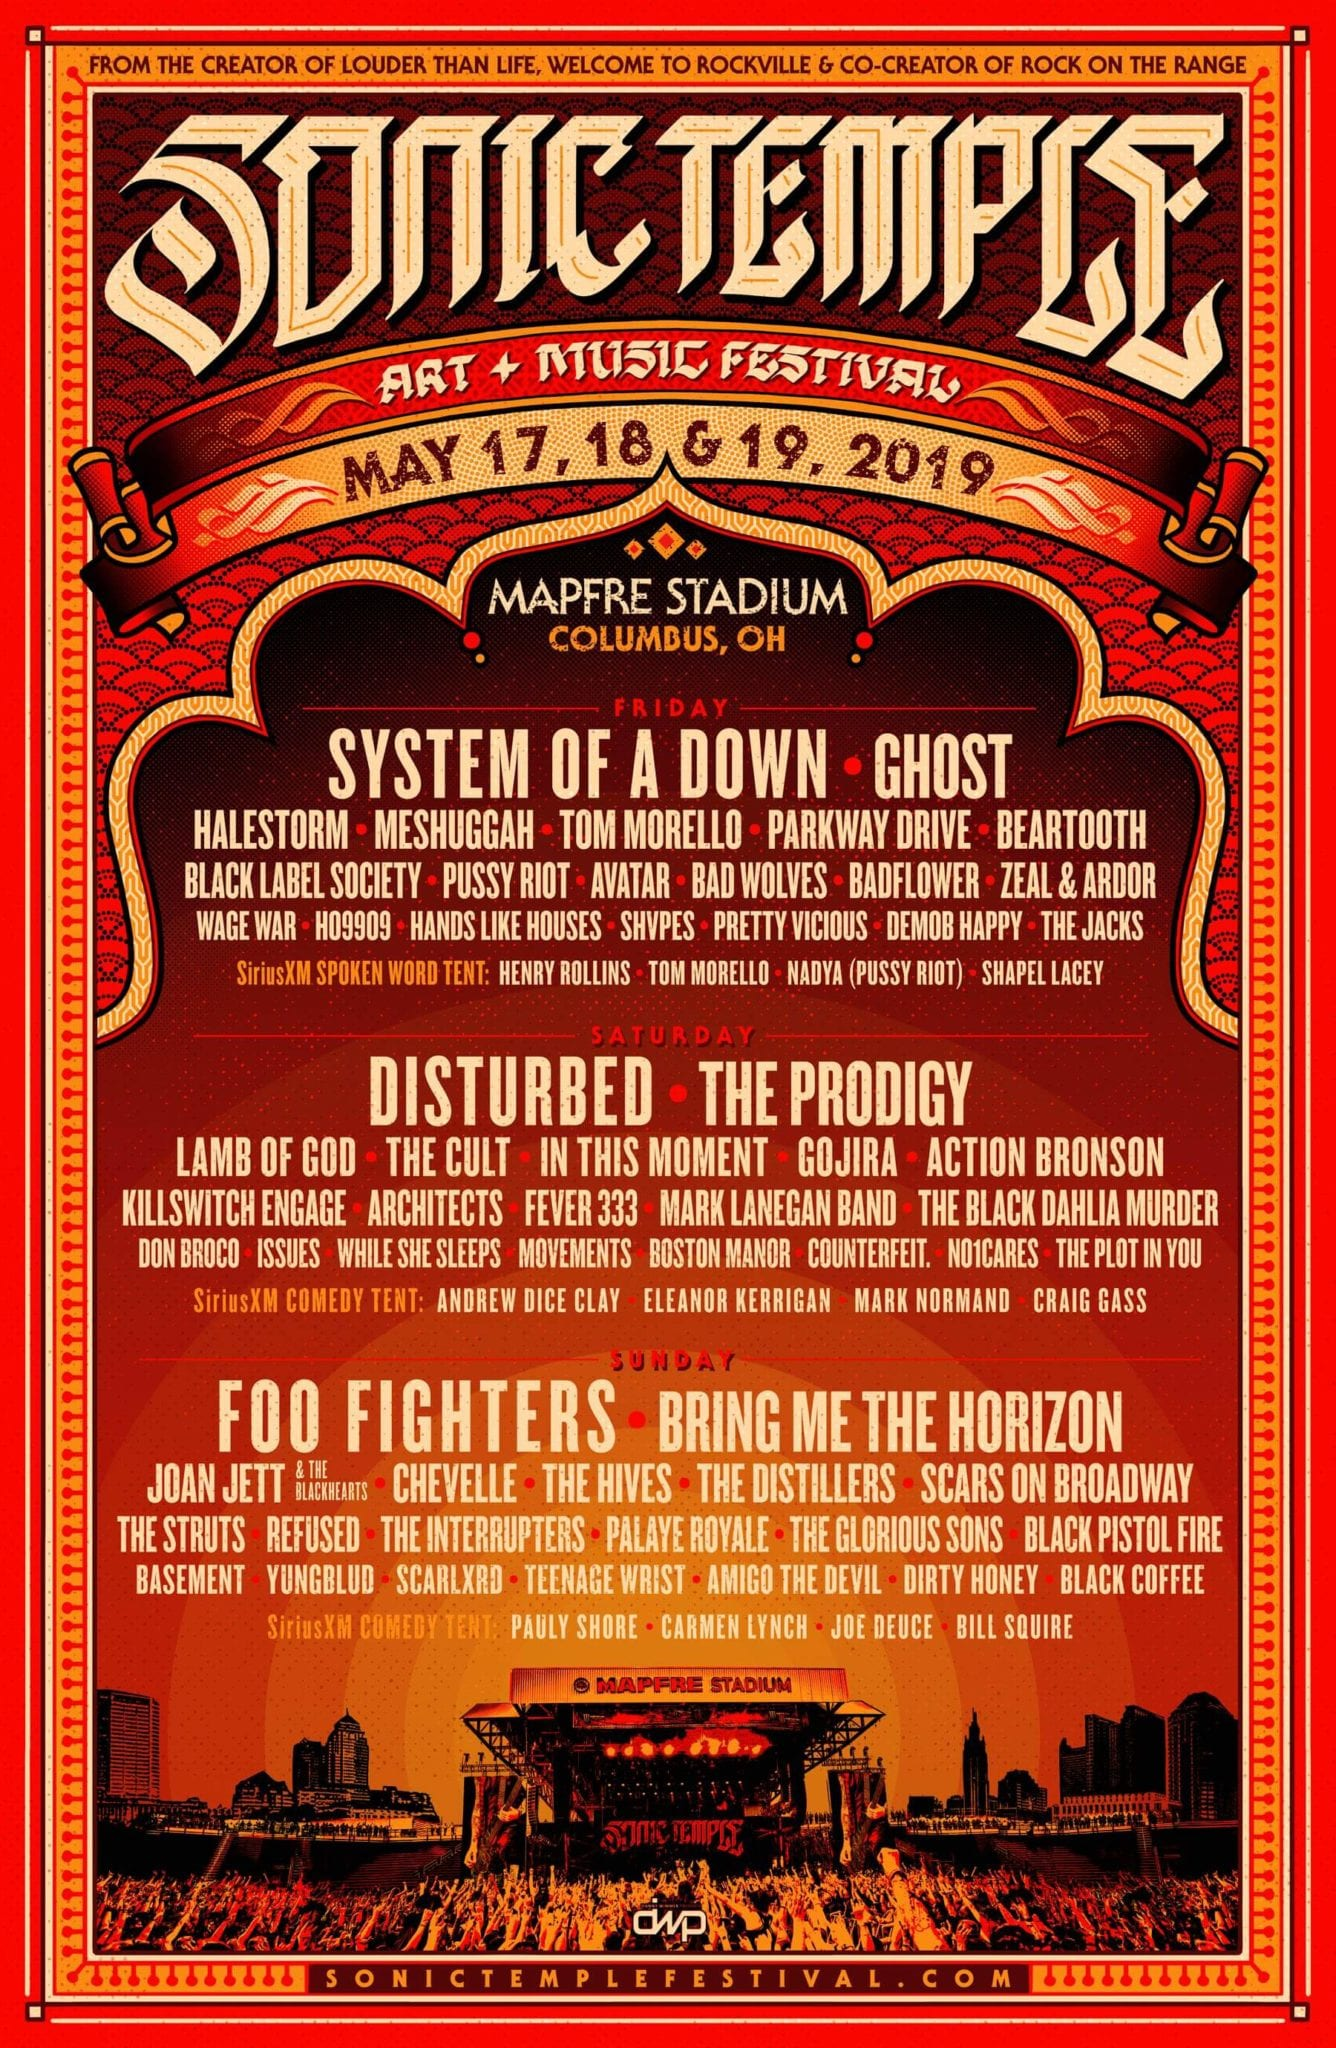 Rock On The Range 2019 Schedule Sonic Temple: Day Schedules • MUSICFESTNEWS